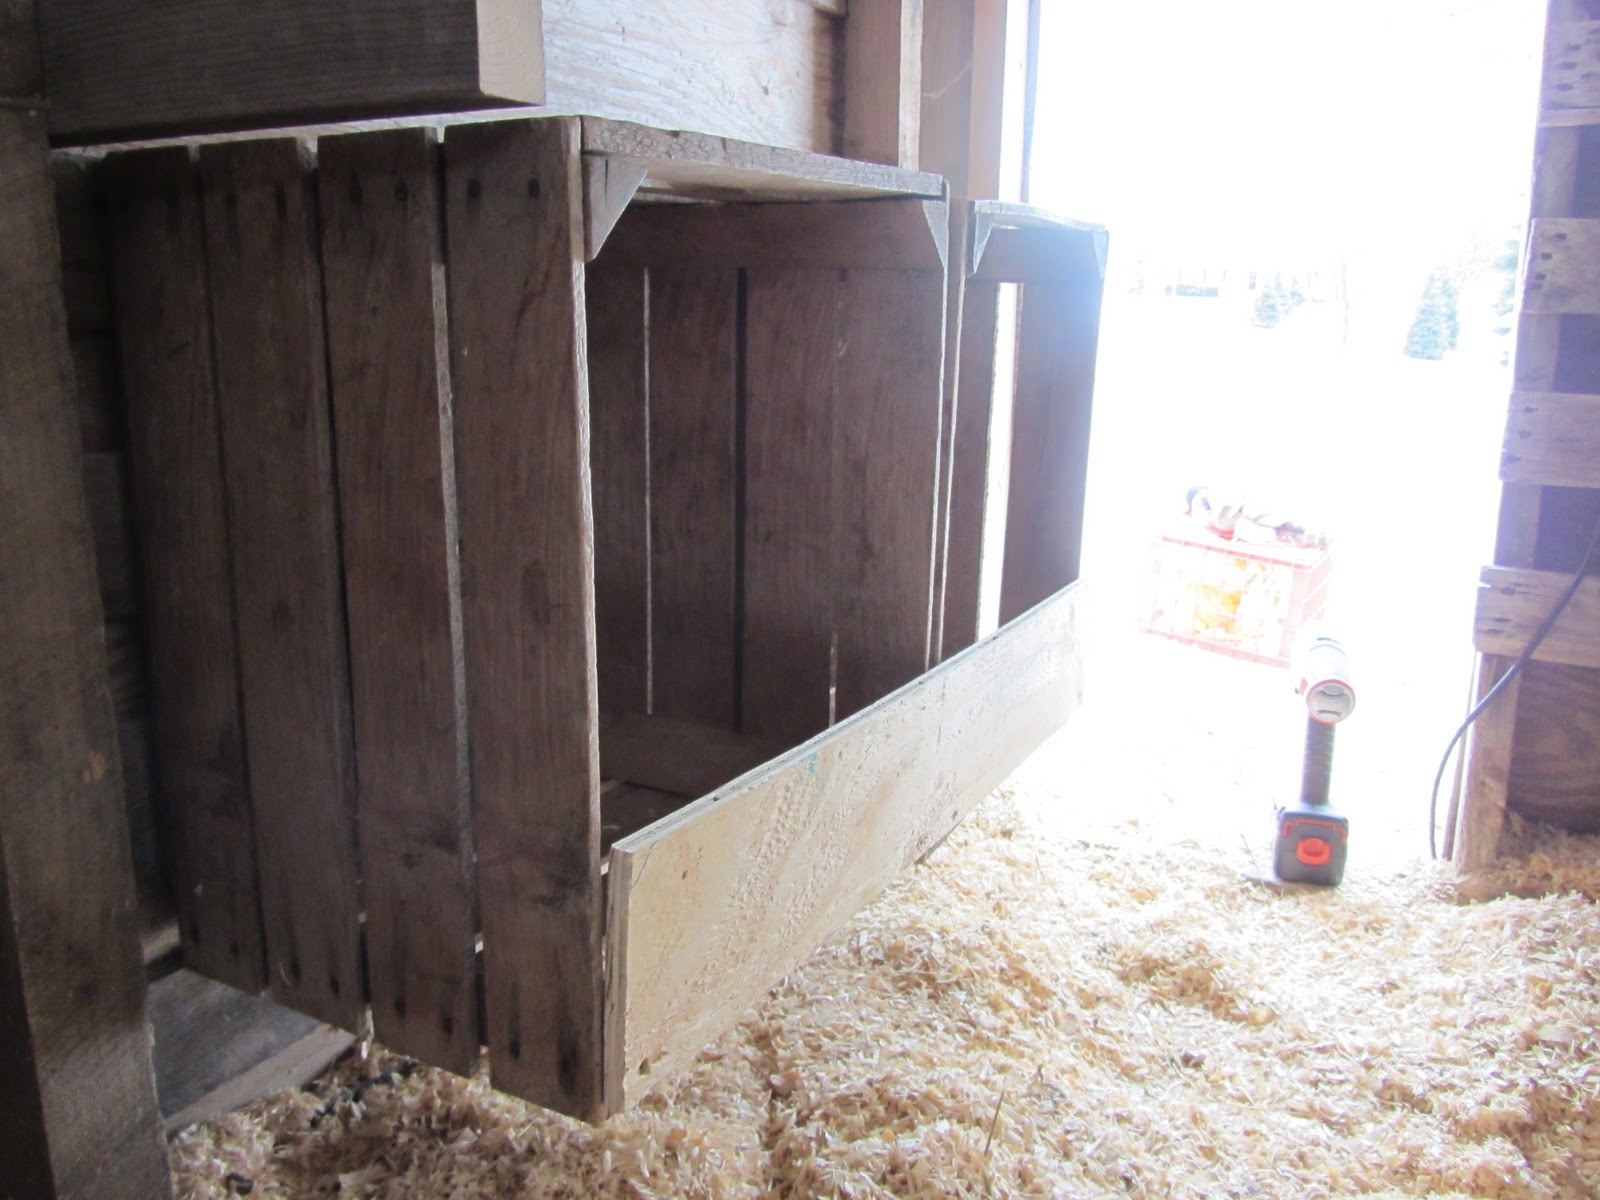 chicken in nesting box how to tell if its sick